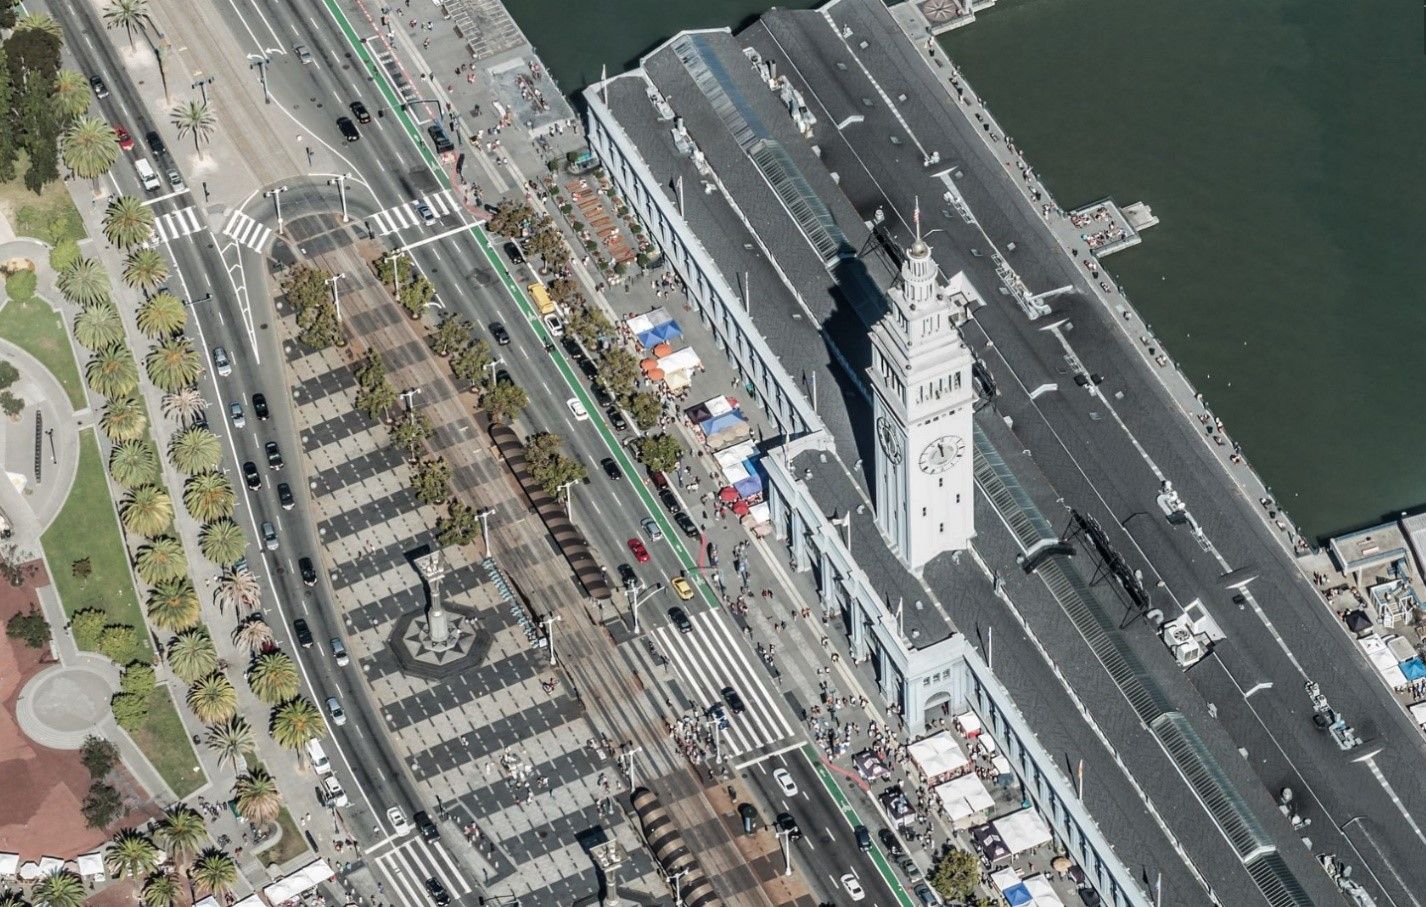 Bing Maps Released New Bird's Eye Imagery FerryBuilding_SanFranciscoCA.jpg